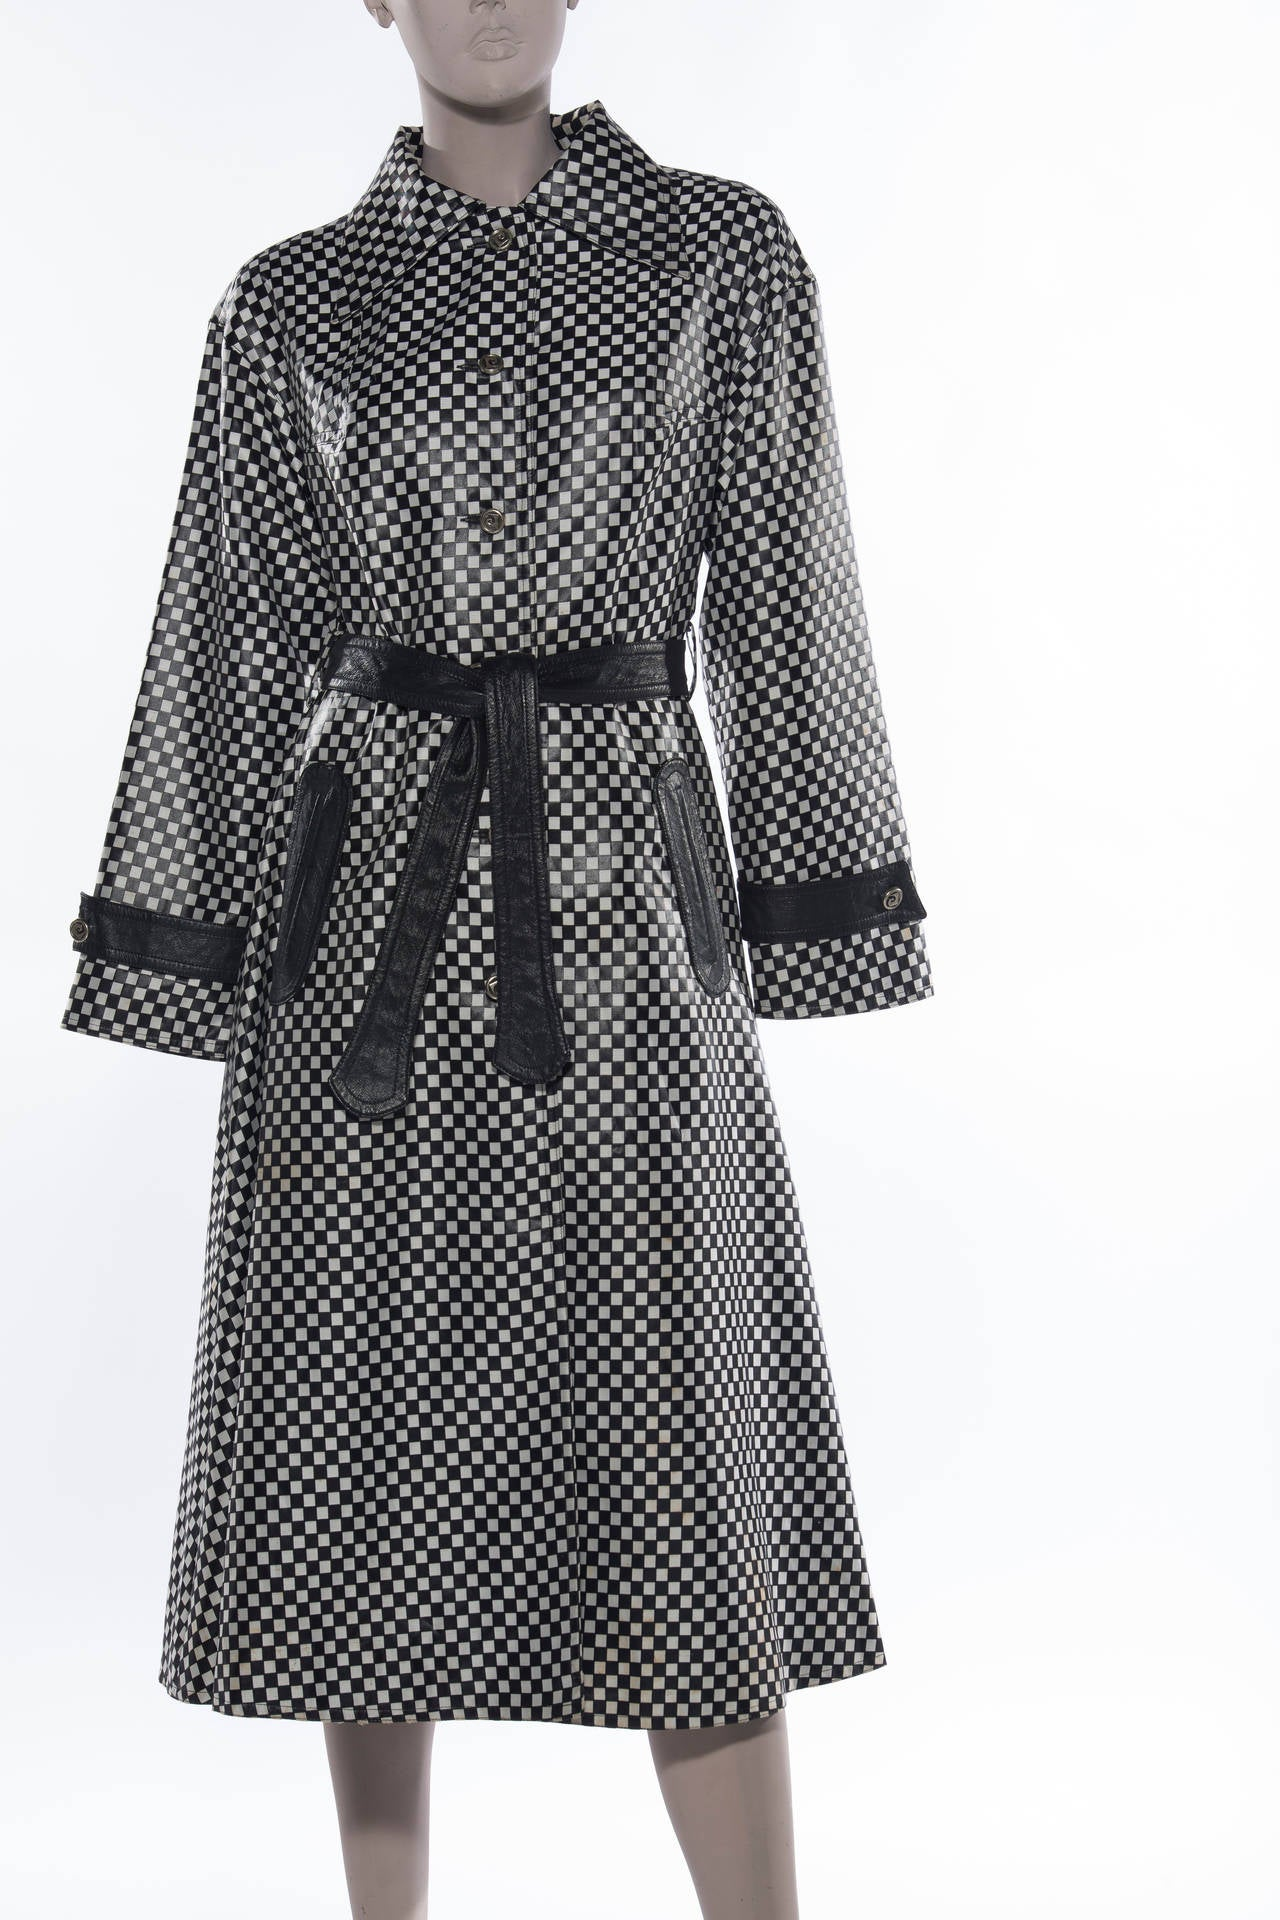 Pierre Cardin, circa1960s black/white check, belted, rain coat, two front pockets and fully lined.